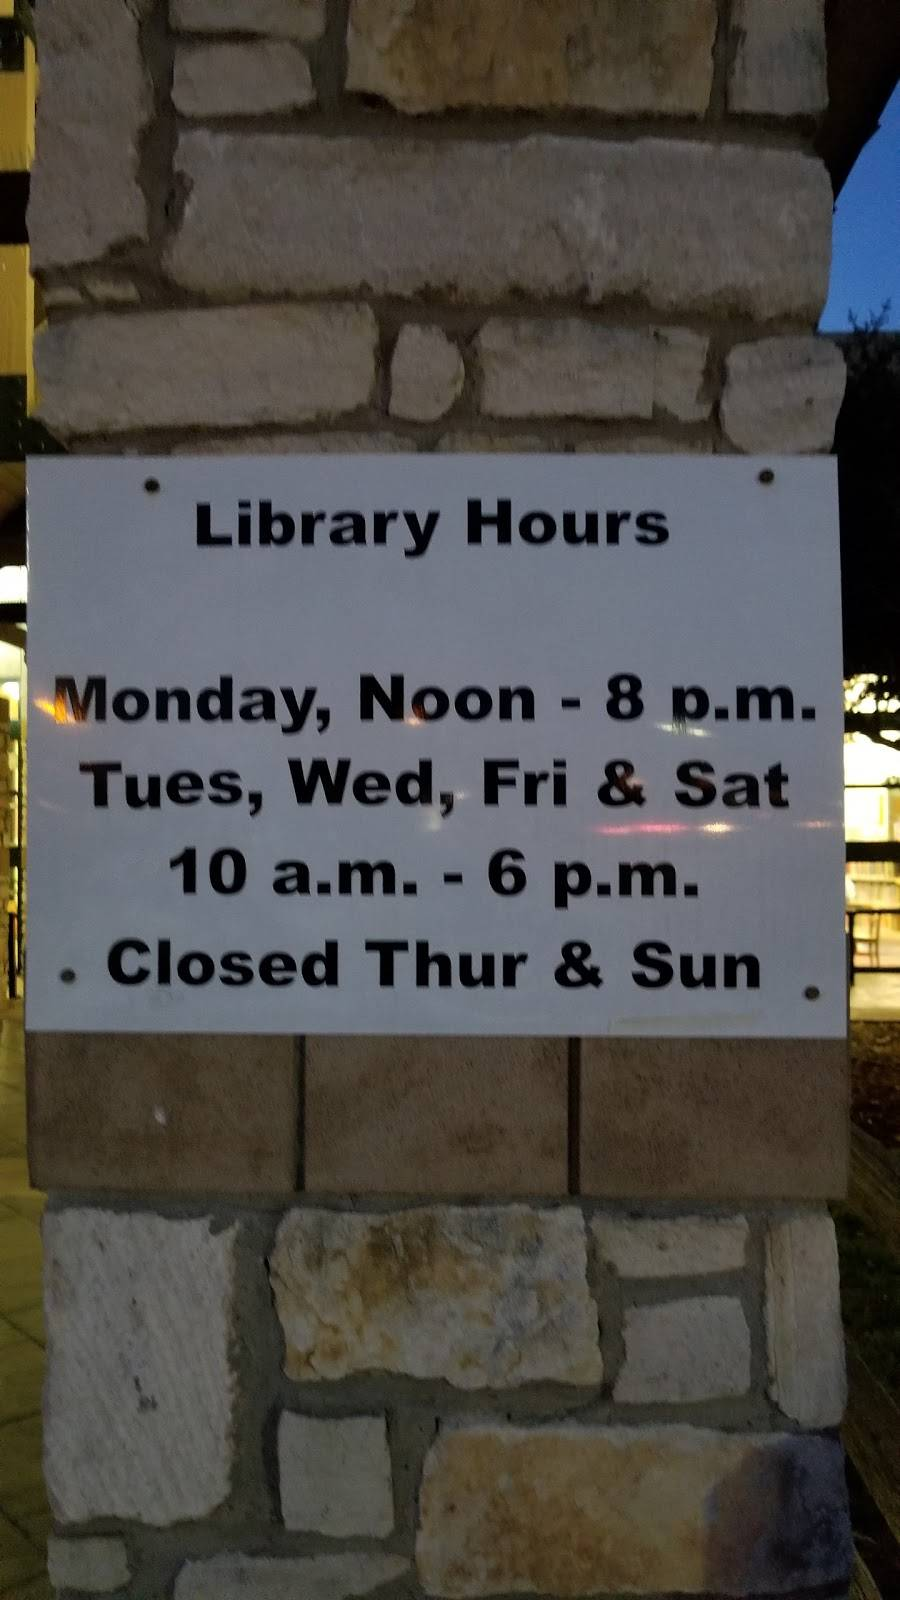 Fort Worth Public Library - Summerglen - library  | Photo 6 of 9 | Address: 4205 Basswood Blvd, Fort Worth, TX 76137, USA | Phone: (817) 392-5970